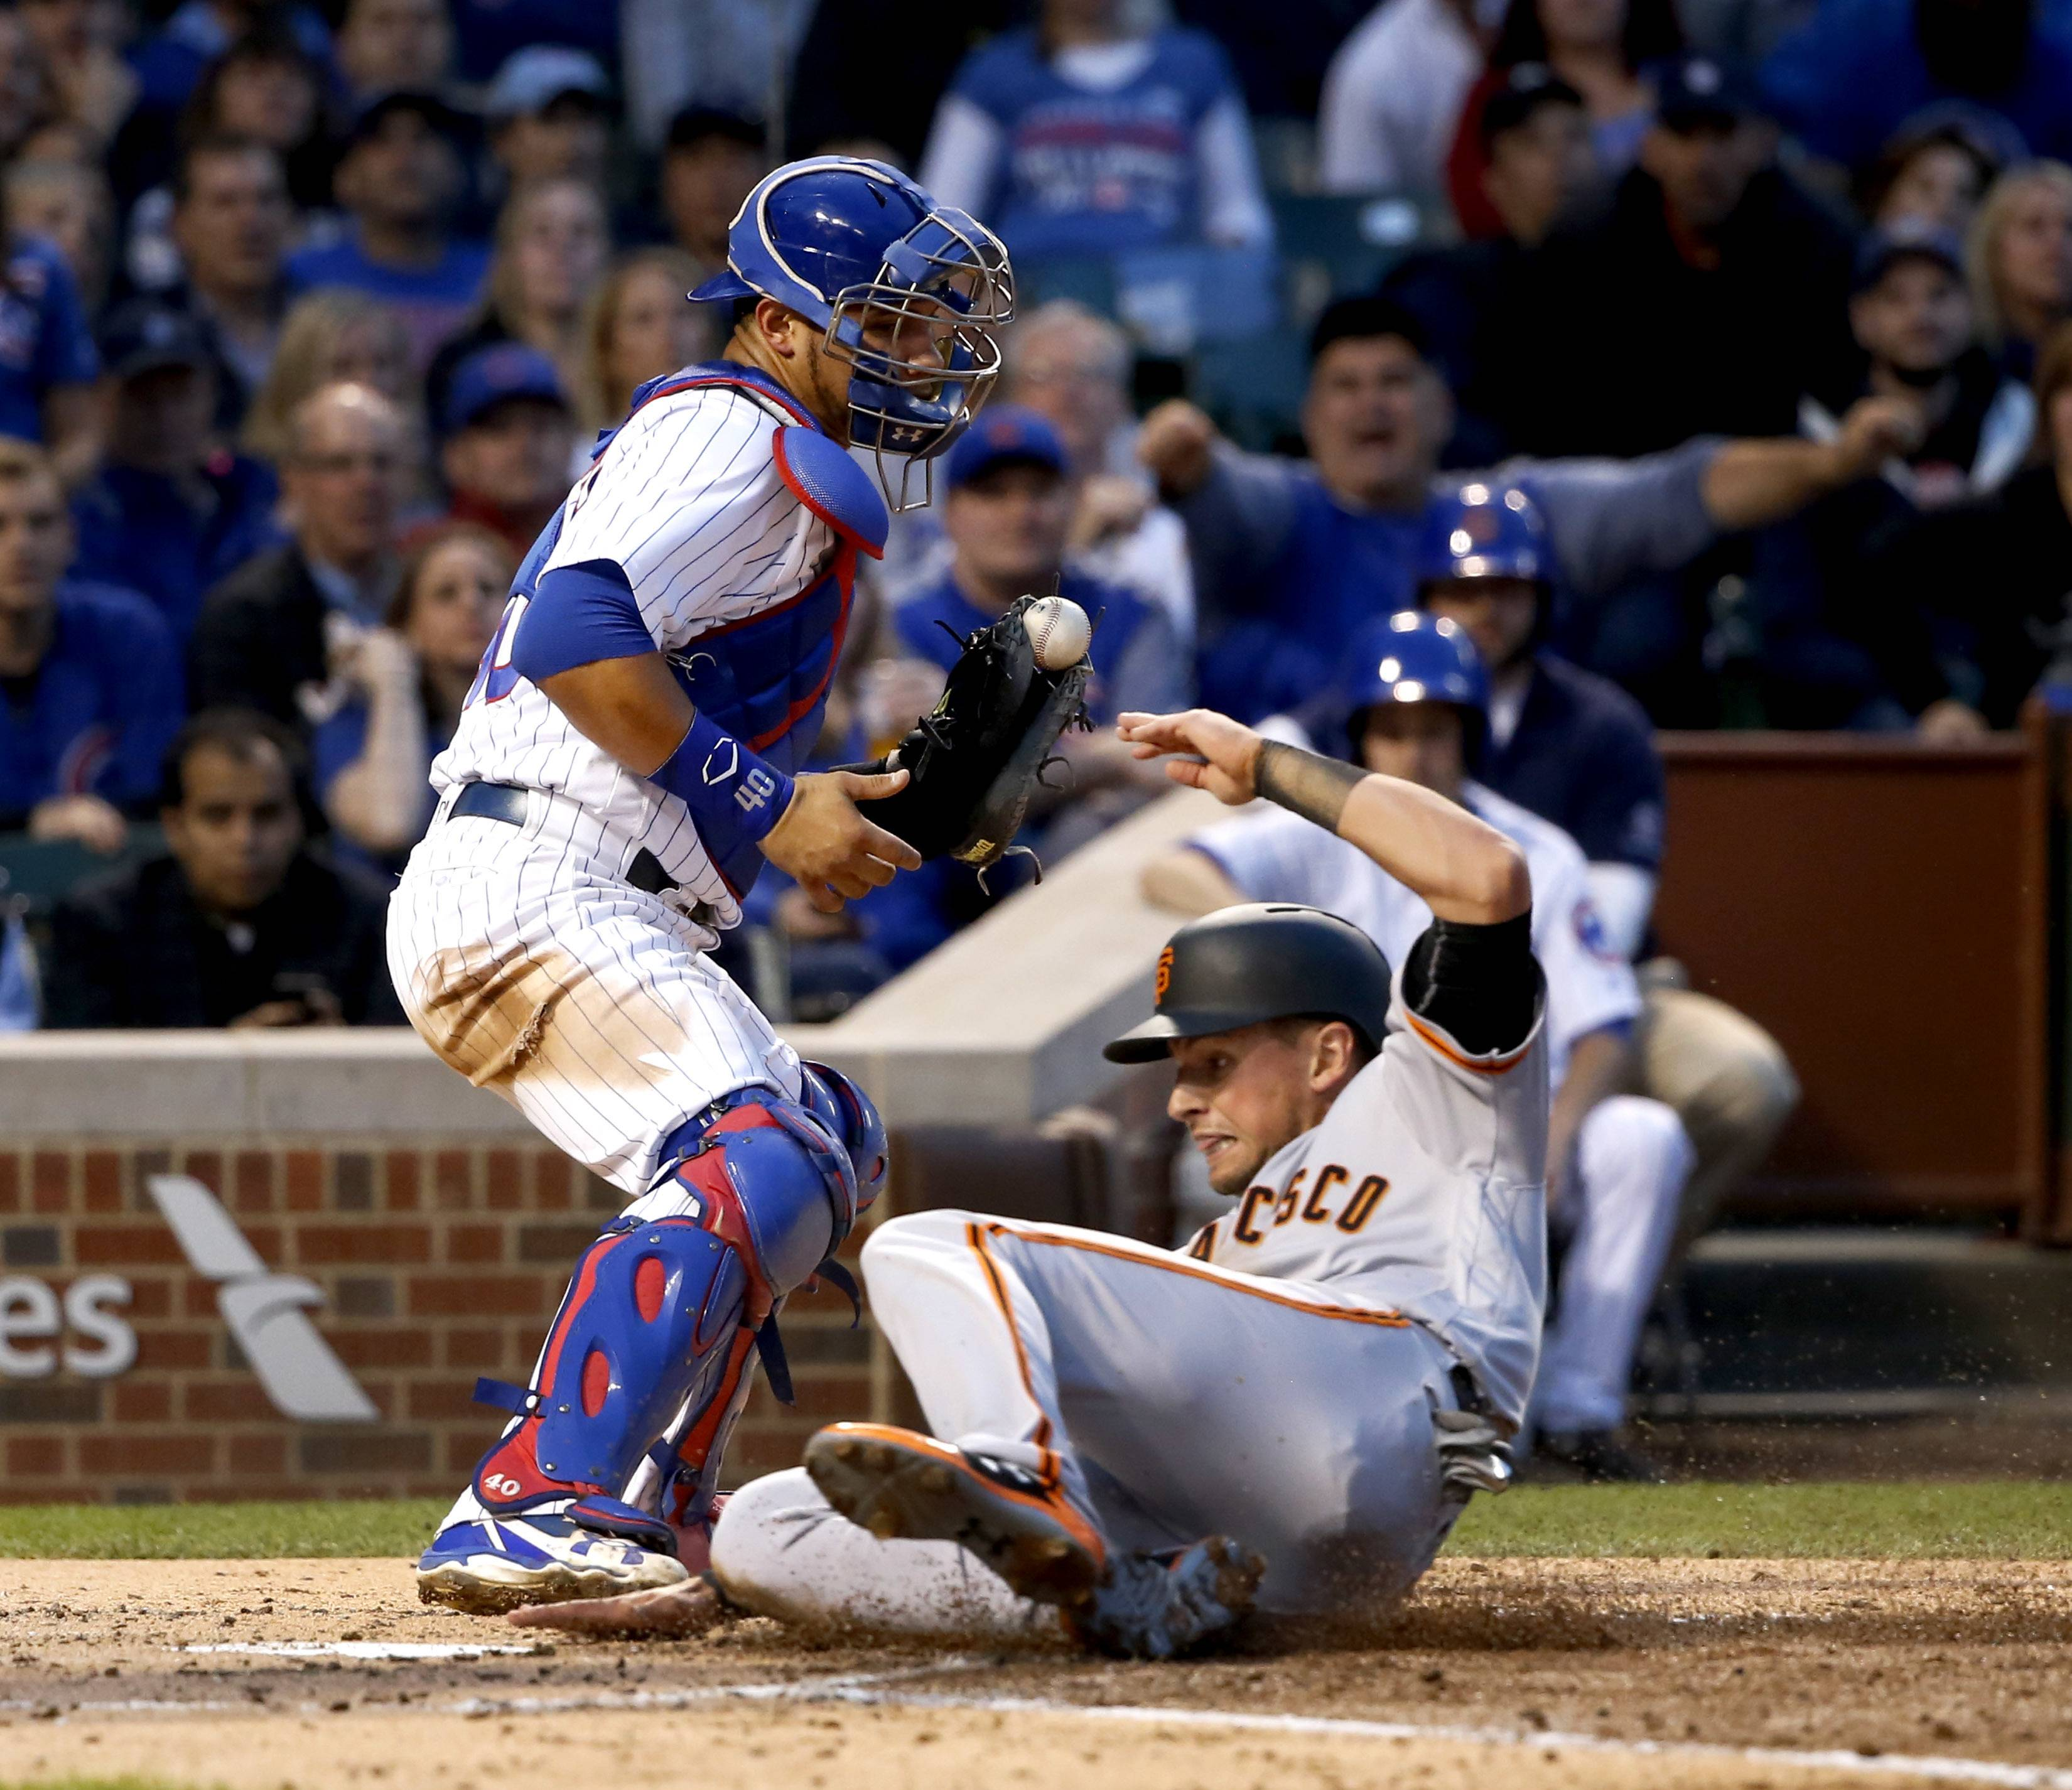 San Francisco Giants' Joe Panik, right, scores in front of Cubs catcher Willson Contreras on a single by Brandon Belt during the third inning against the Cubs on Monday in Chicago.